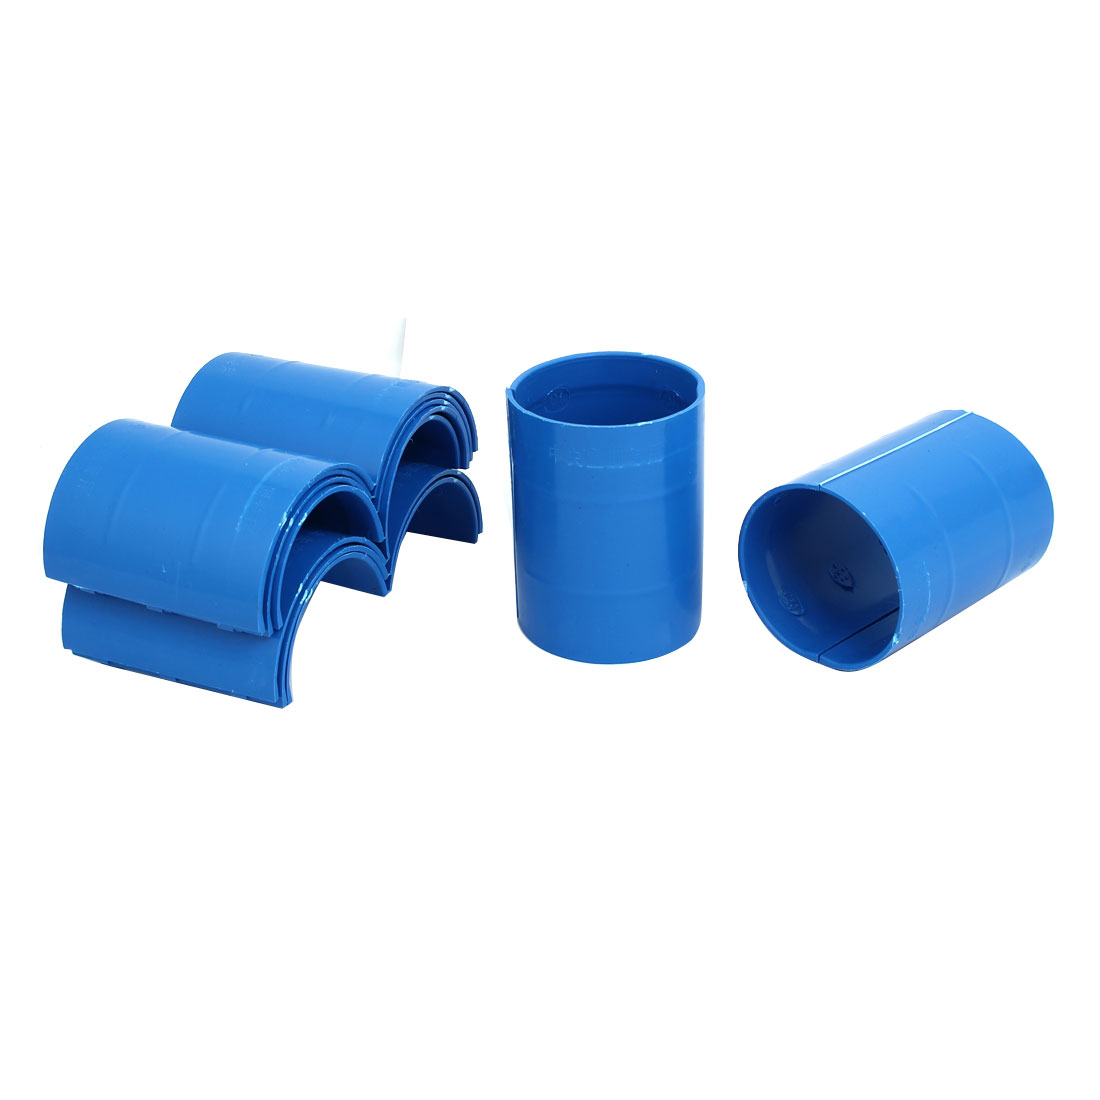 63mm Dia 2mm Thickness Central Air Conditioning Pipe Tube Clamp Blue 9pcs